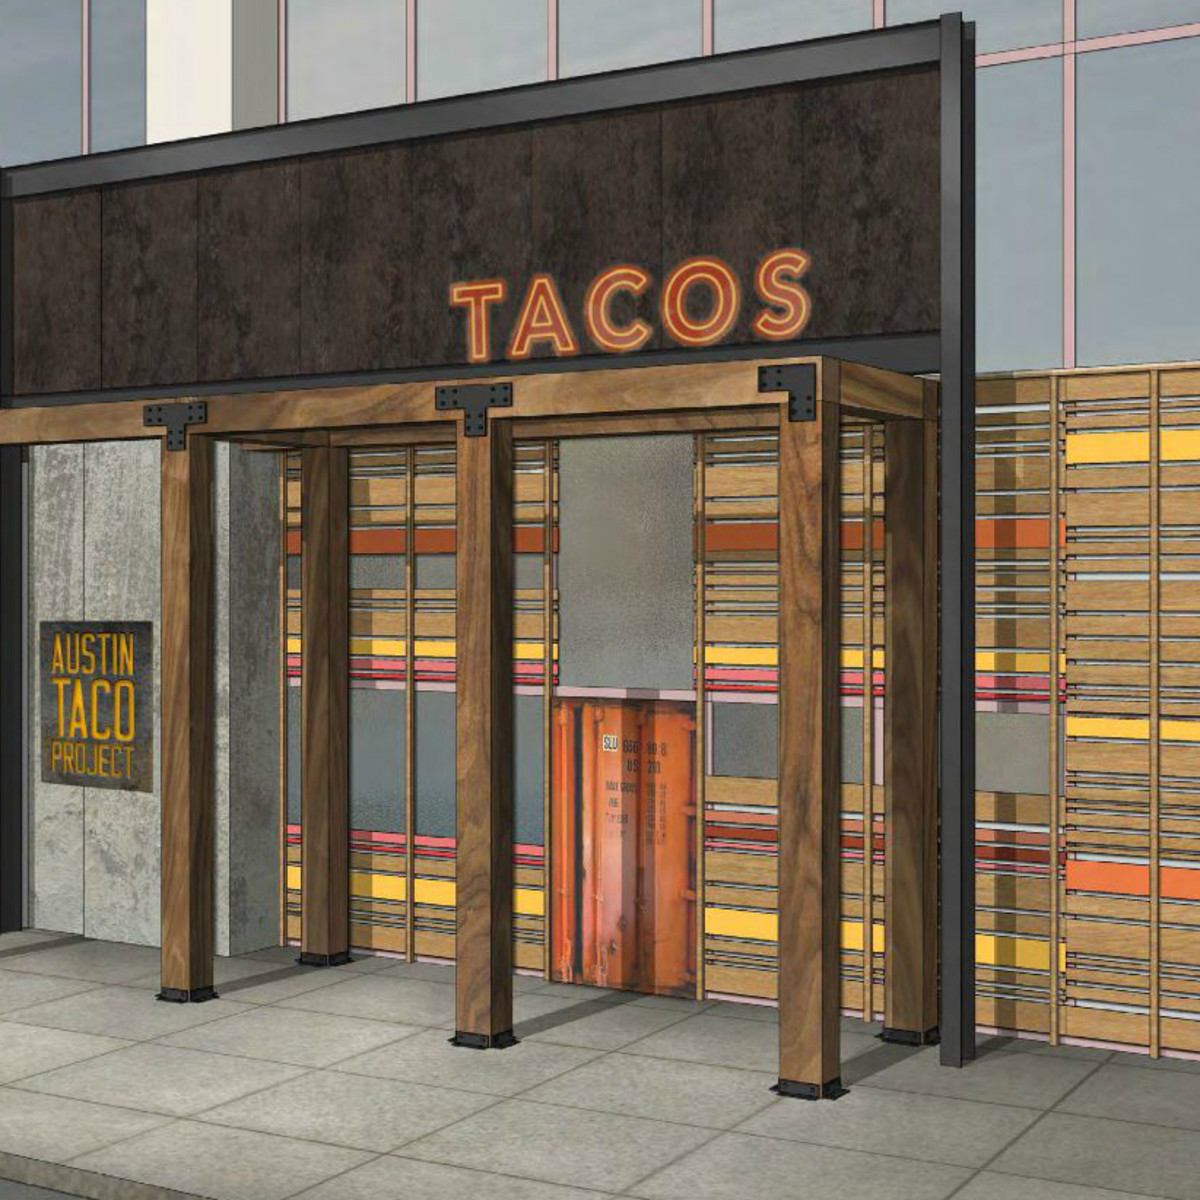 Hilton Austin downtown hotel 2016 renovation rendering Austin Taco Project exterior